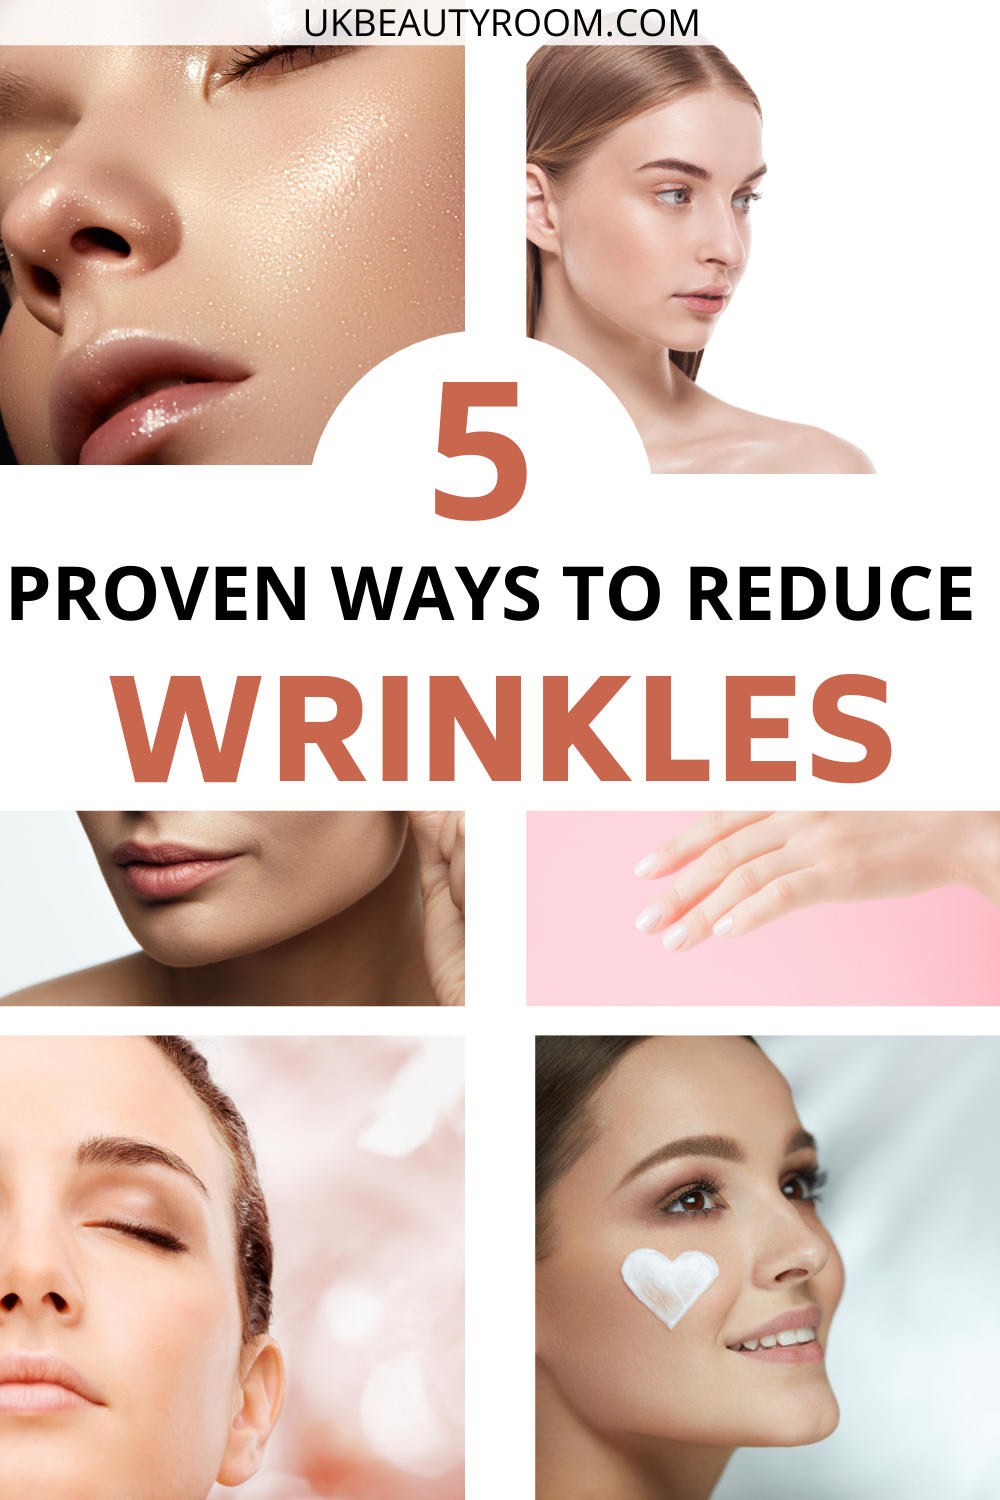 5 PROVEN WAYS TO REDUCE UNDER EYE WRINKLES